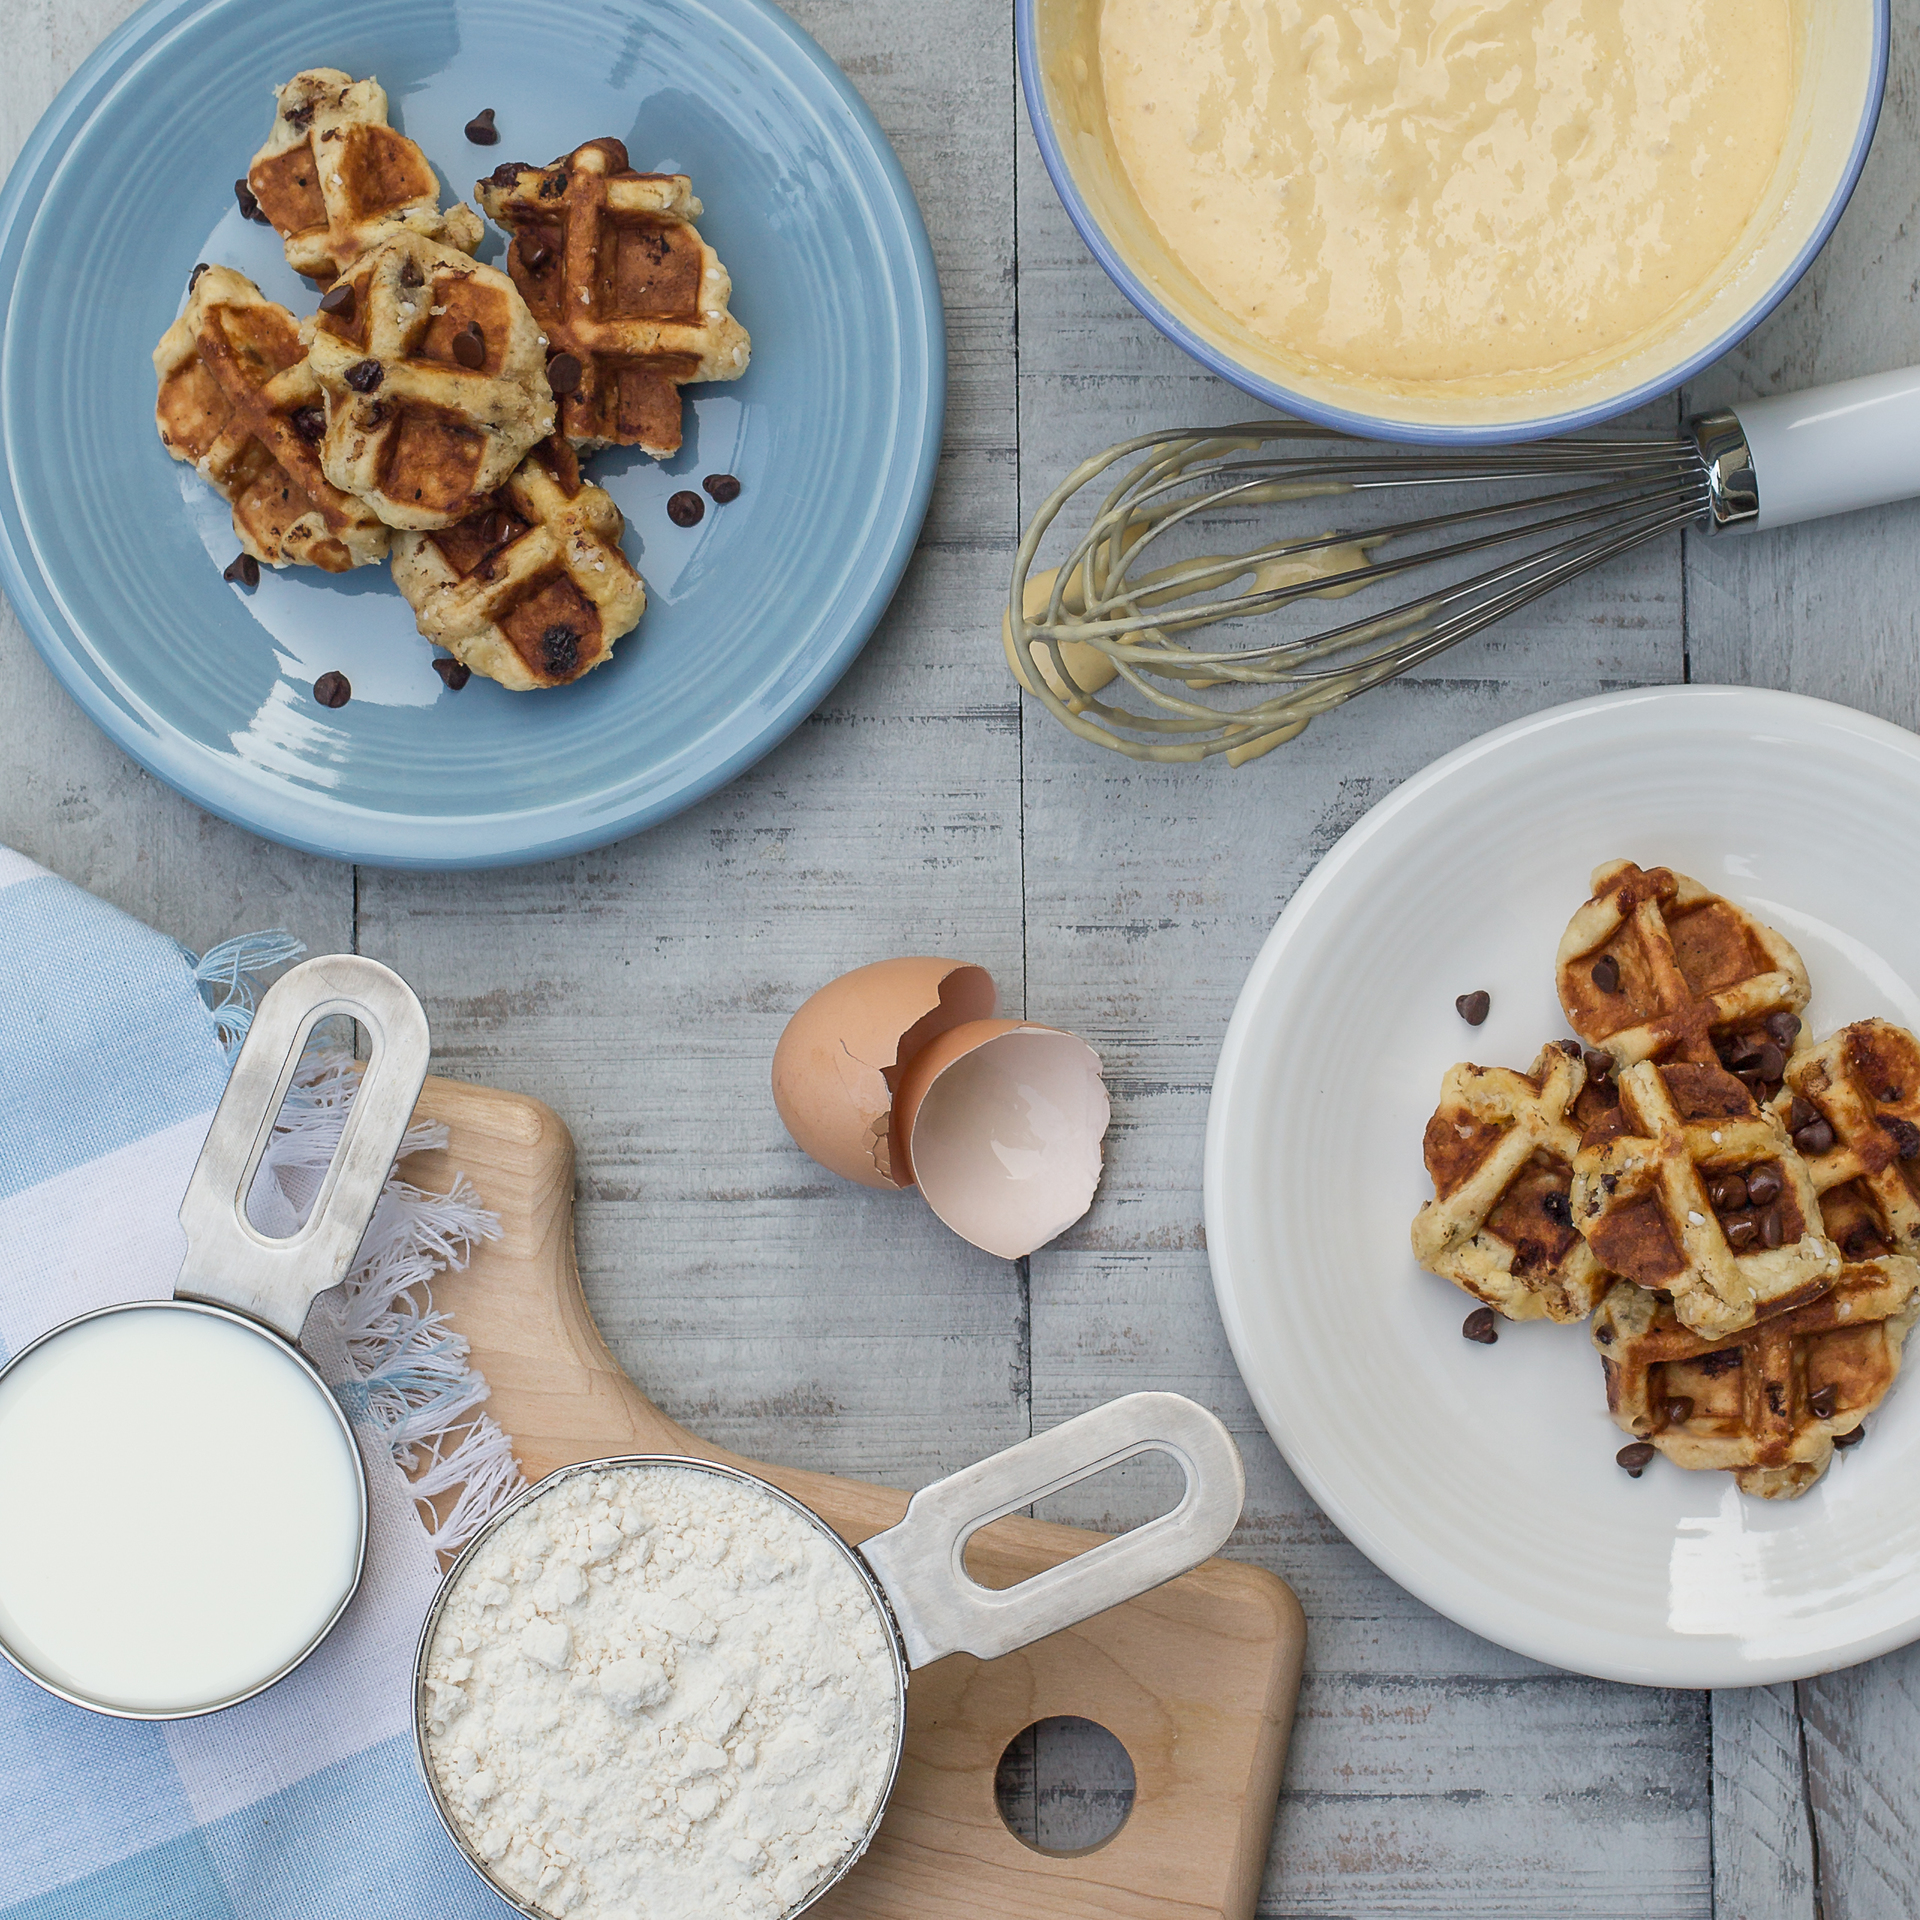 Waffles and ingredients | bowl, breakfast, food, homemade